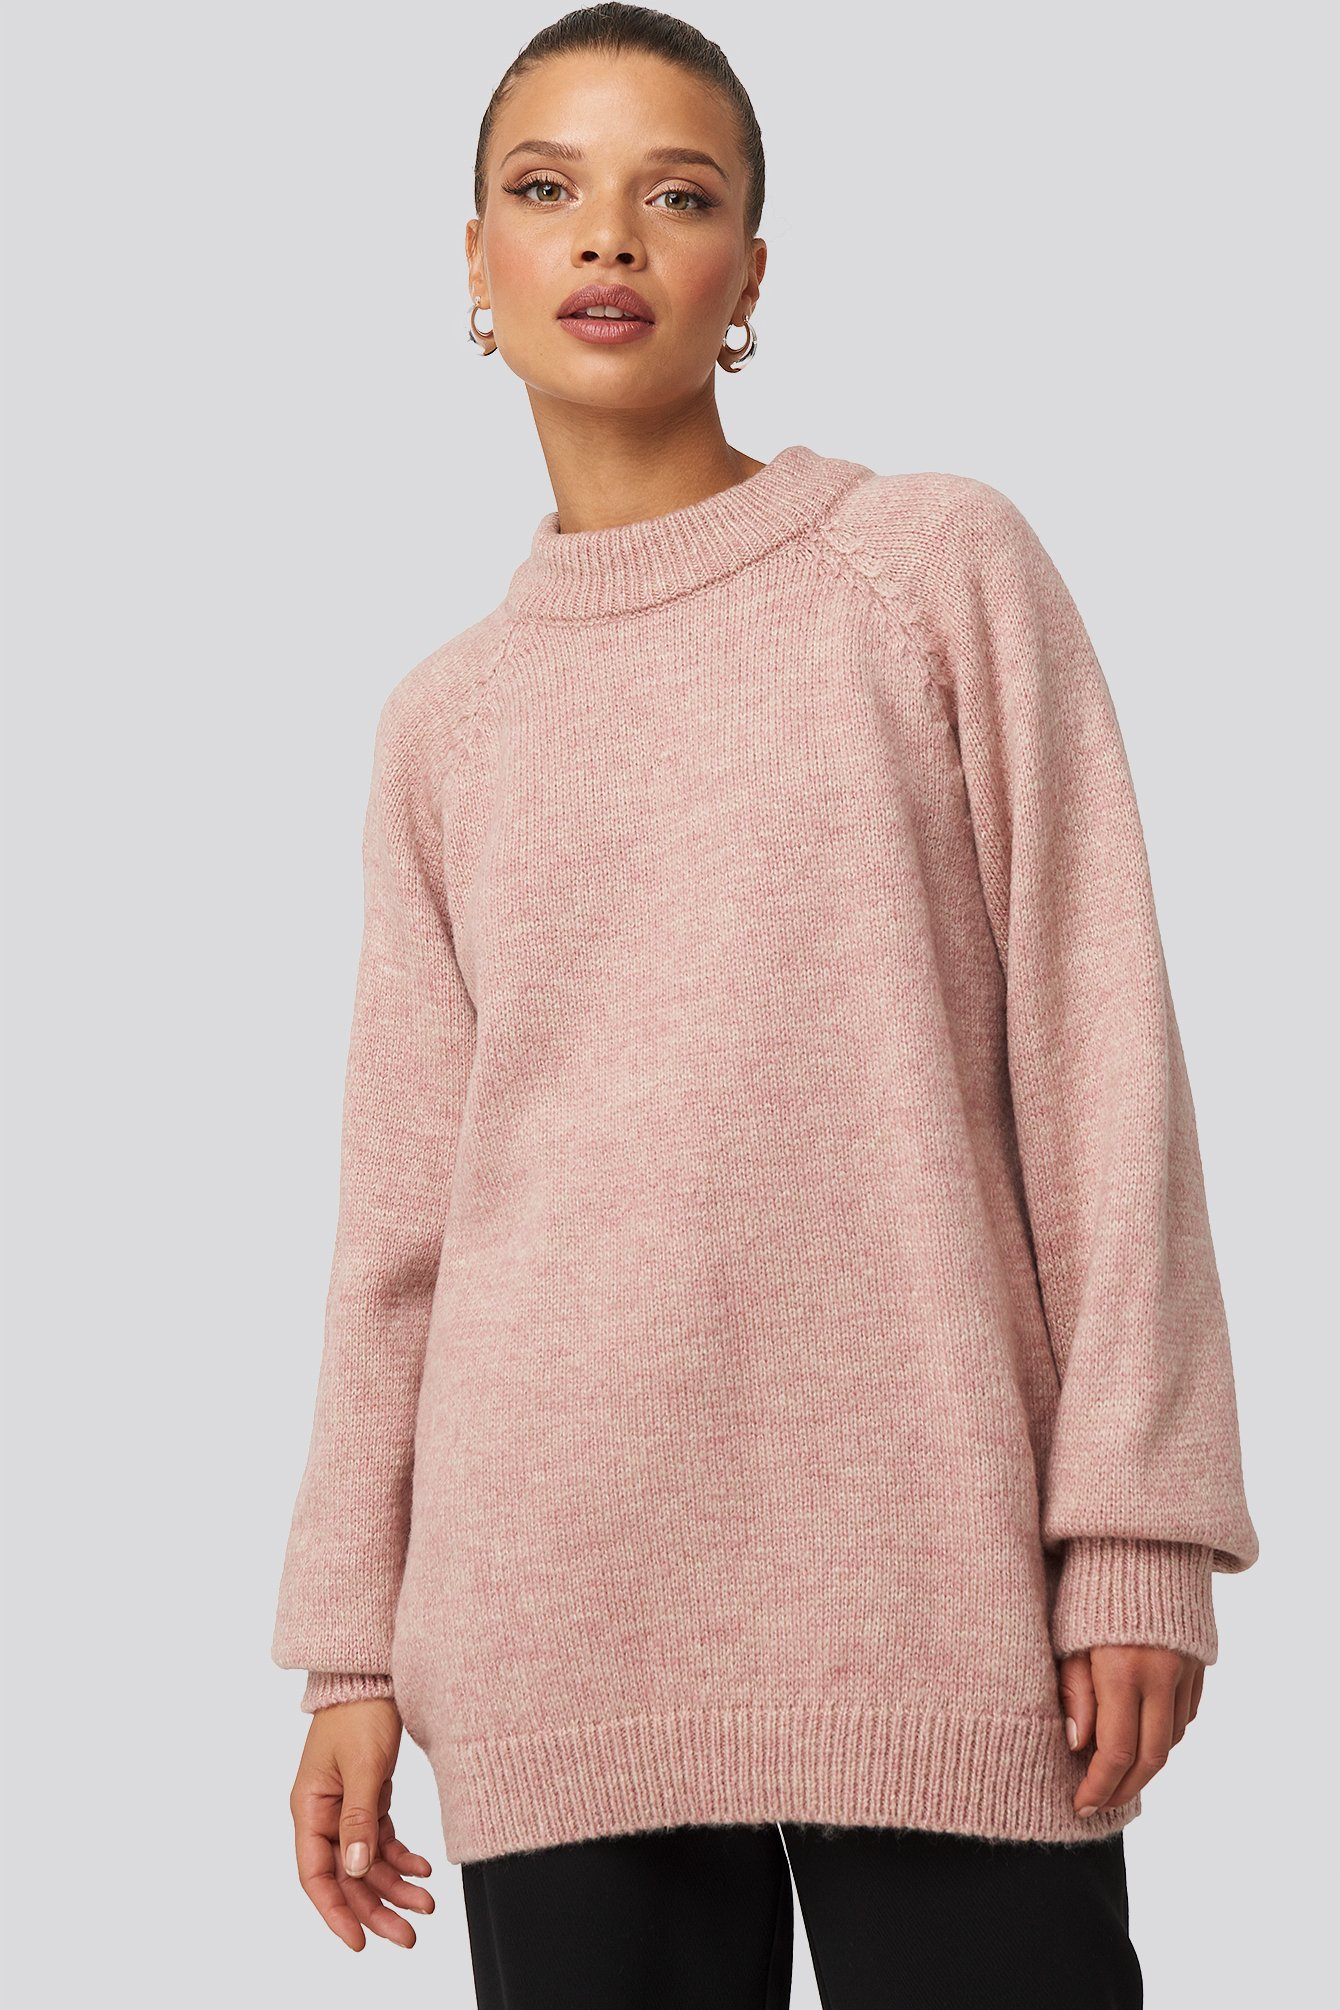 Raglan Sleeve Knitted Sweater Rosa by Na Kd